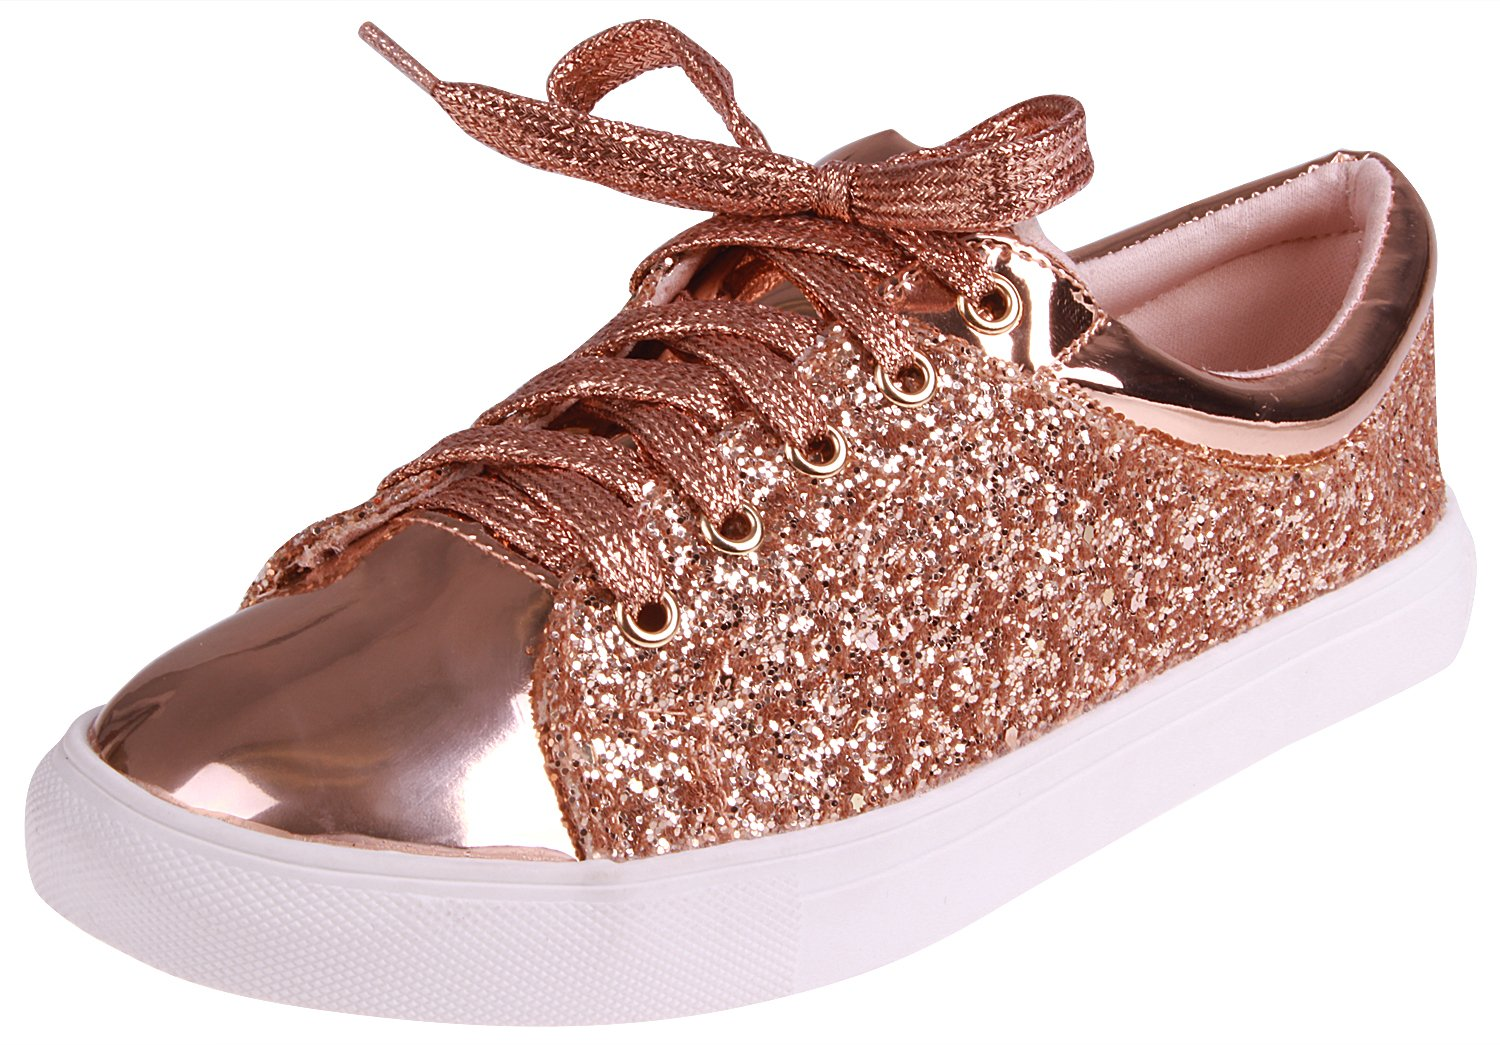 Enimay Women's Glitter Fashion Sneaker Classic Lace-up Mesh Running Shoe B07BTHQKYT 7 B(M) US|Sparkle Rose Gold